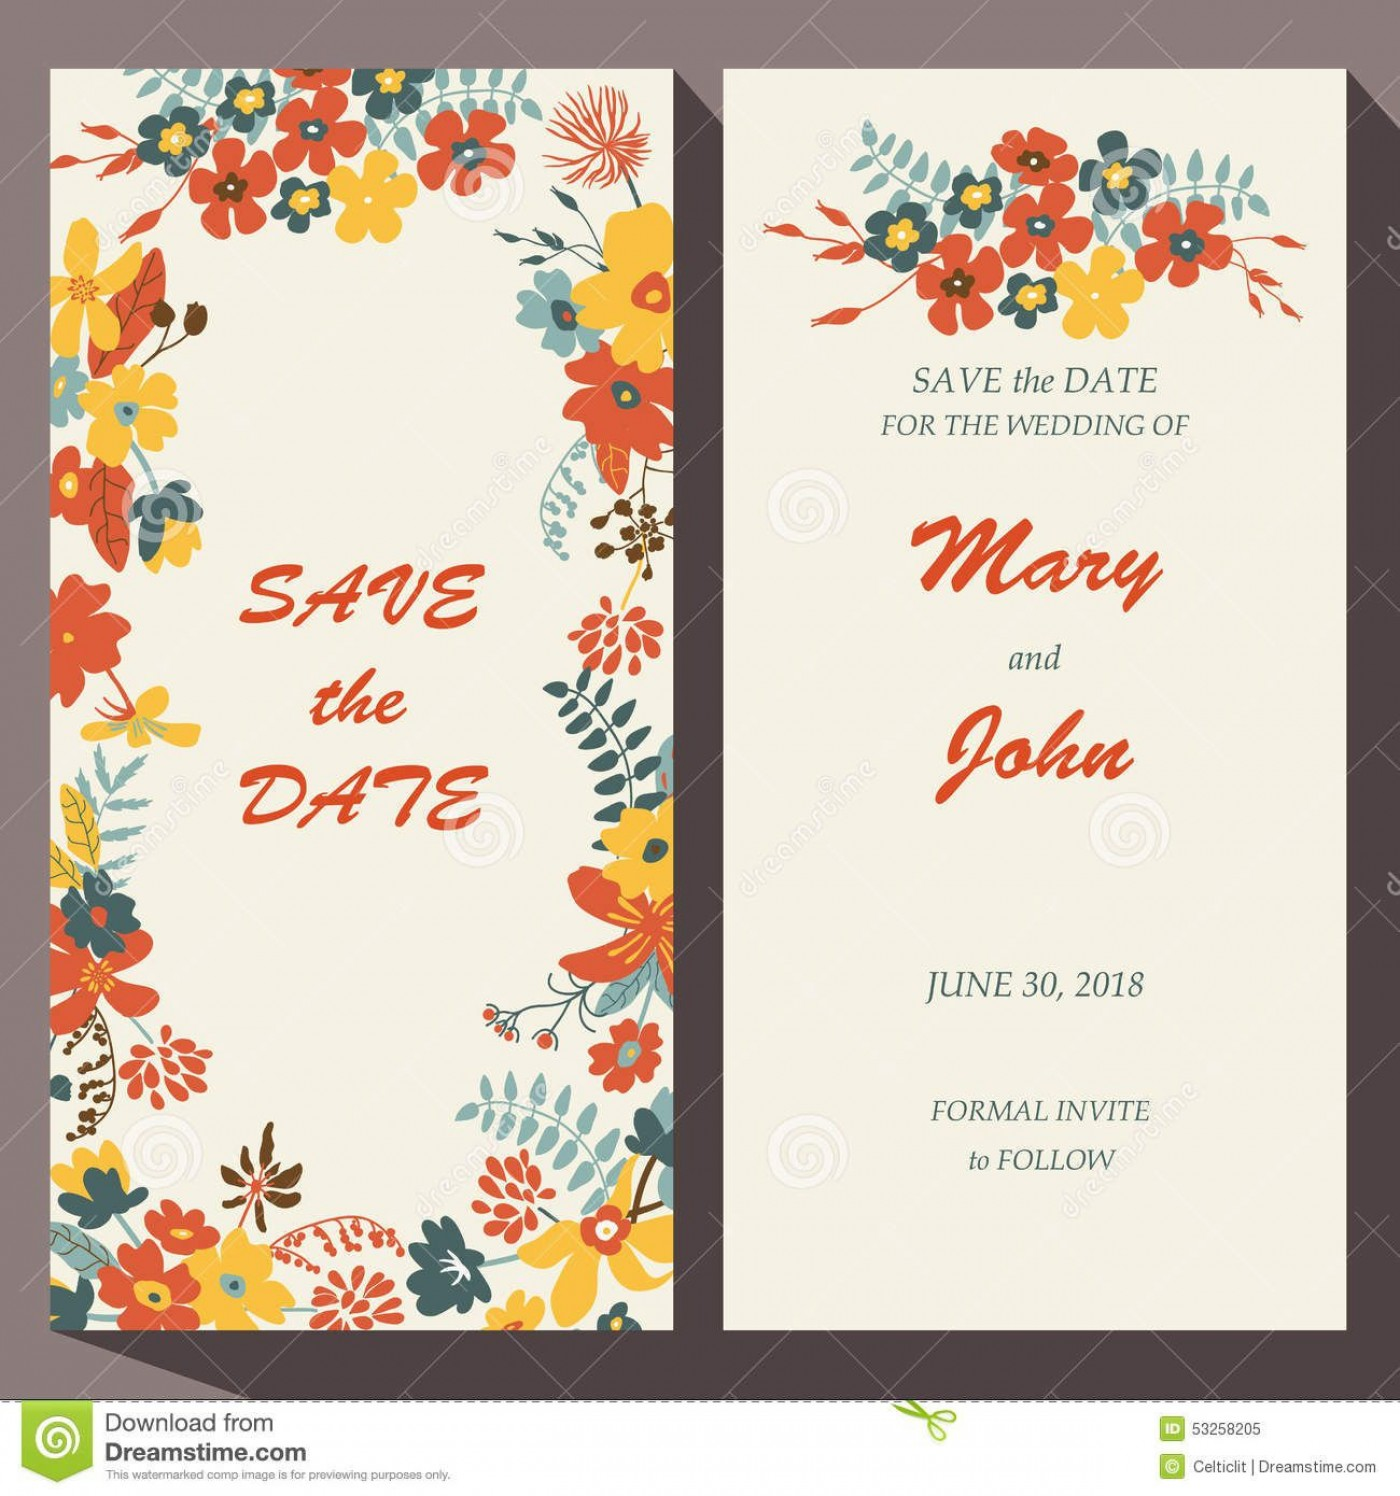 009 Unbelievable Free Save The Date Birthday Postcard Template Concept 1400